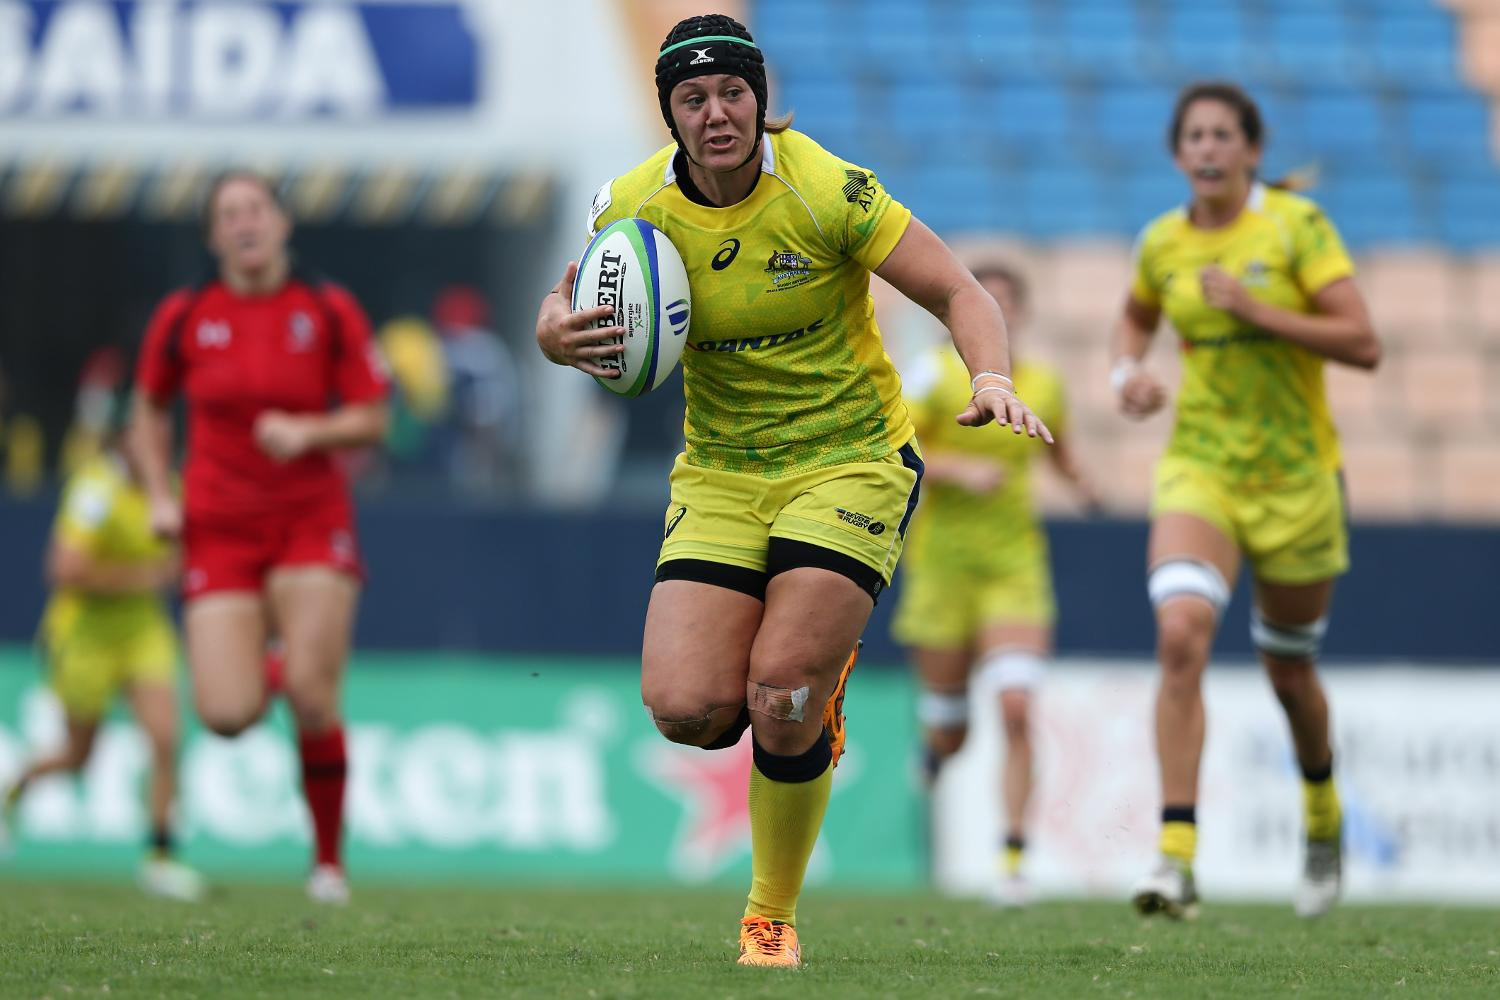 Australia and Canada on day two at Brazil 7s